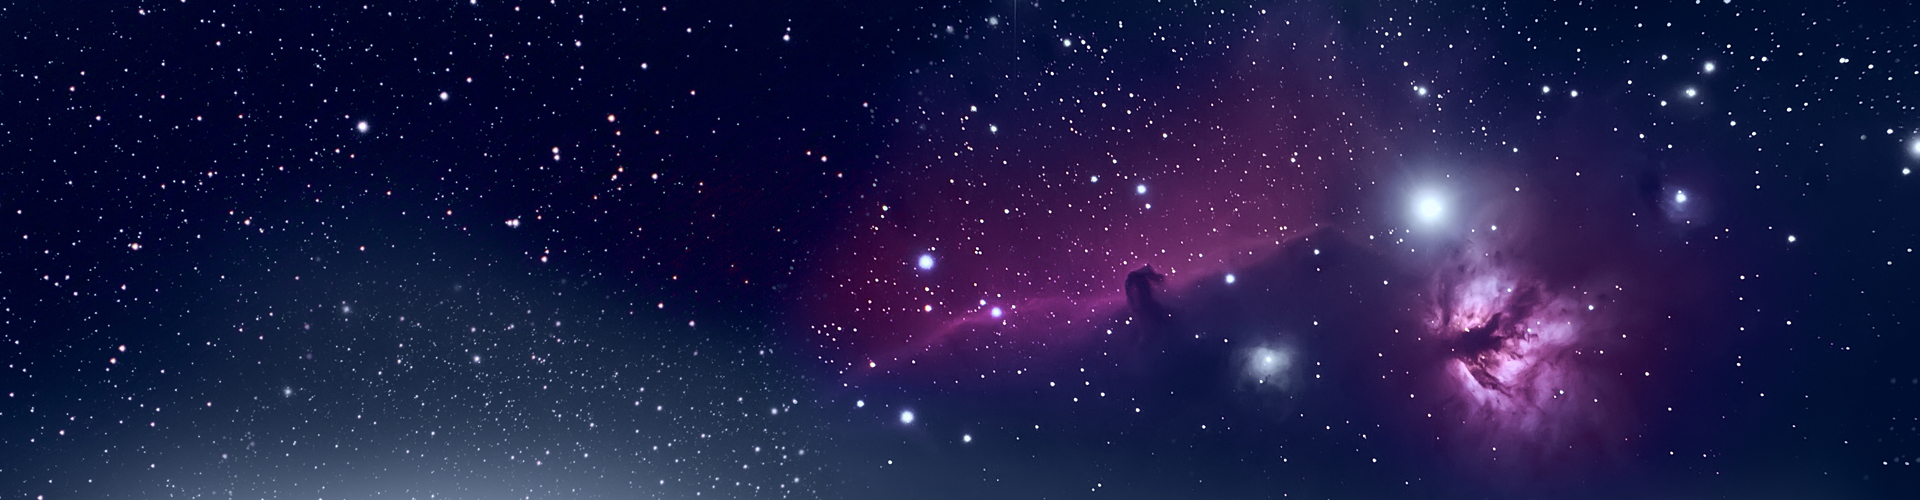 purple universe, star, universe, starlight background image for free